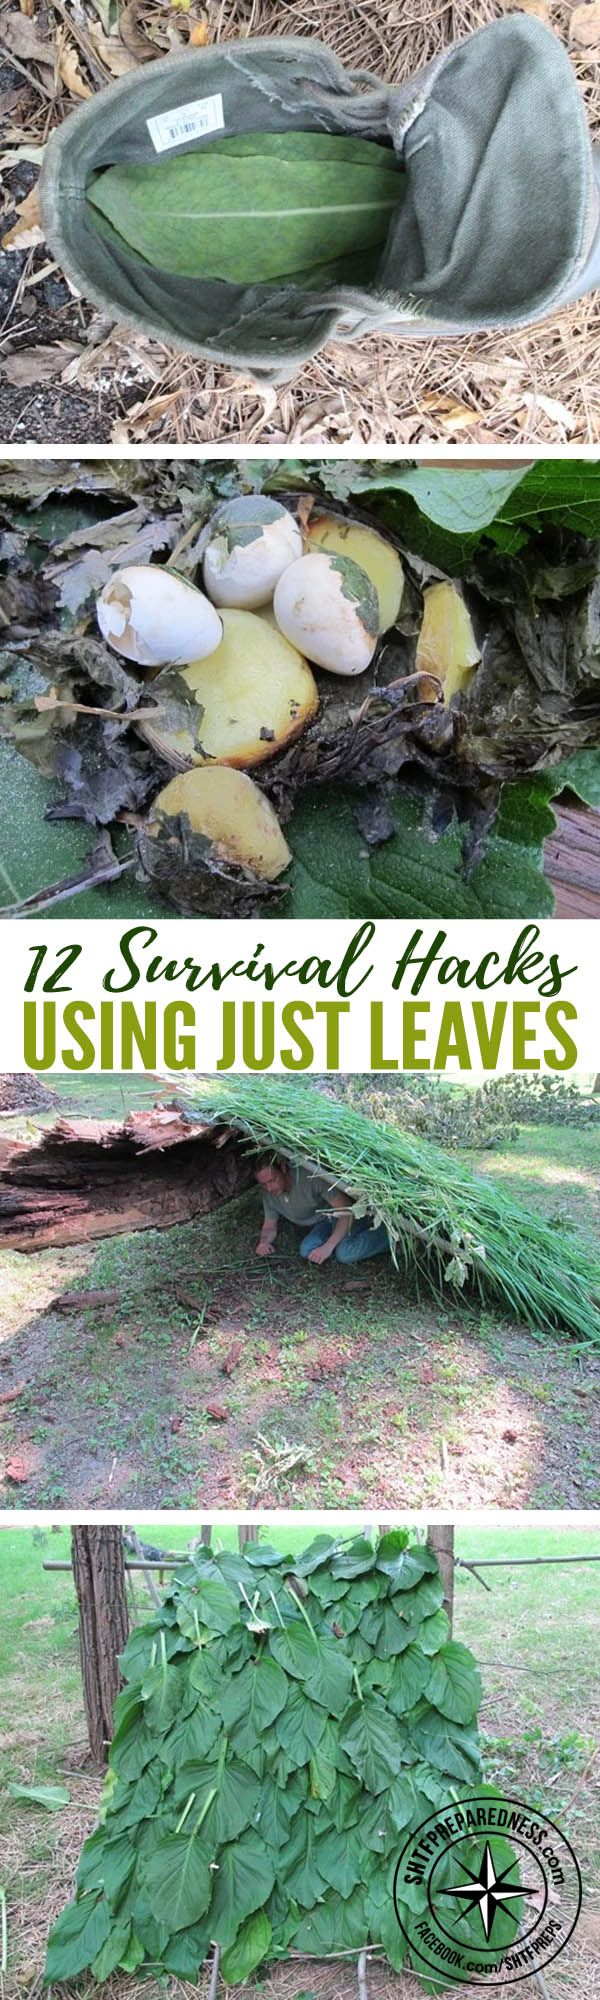 12 Survival Hacks Using Just Leaves — When in a survival situation pretty much anything and everything can be upcycled into something that can aide you in surviving. Over at willowhavenoutdoor.com Creek shows us 12 survival hacks that we can use just by using leaves.